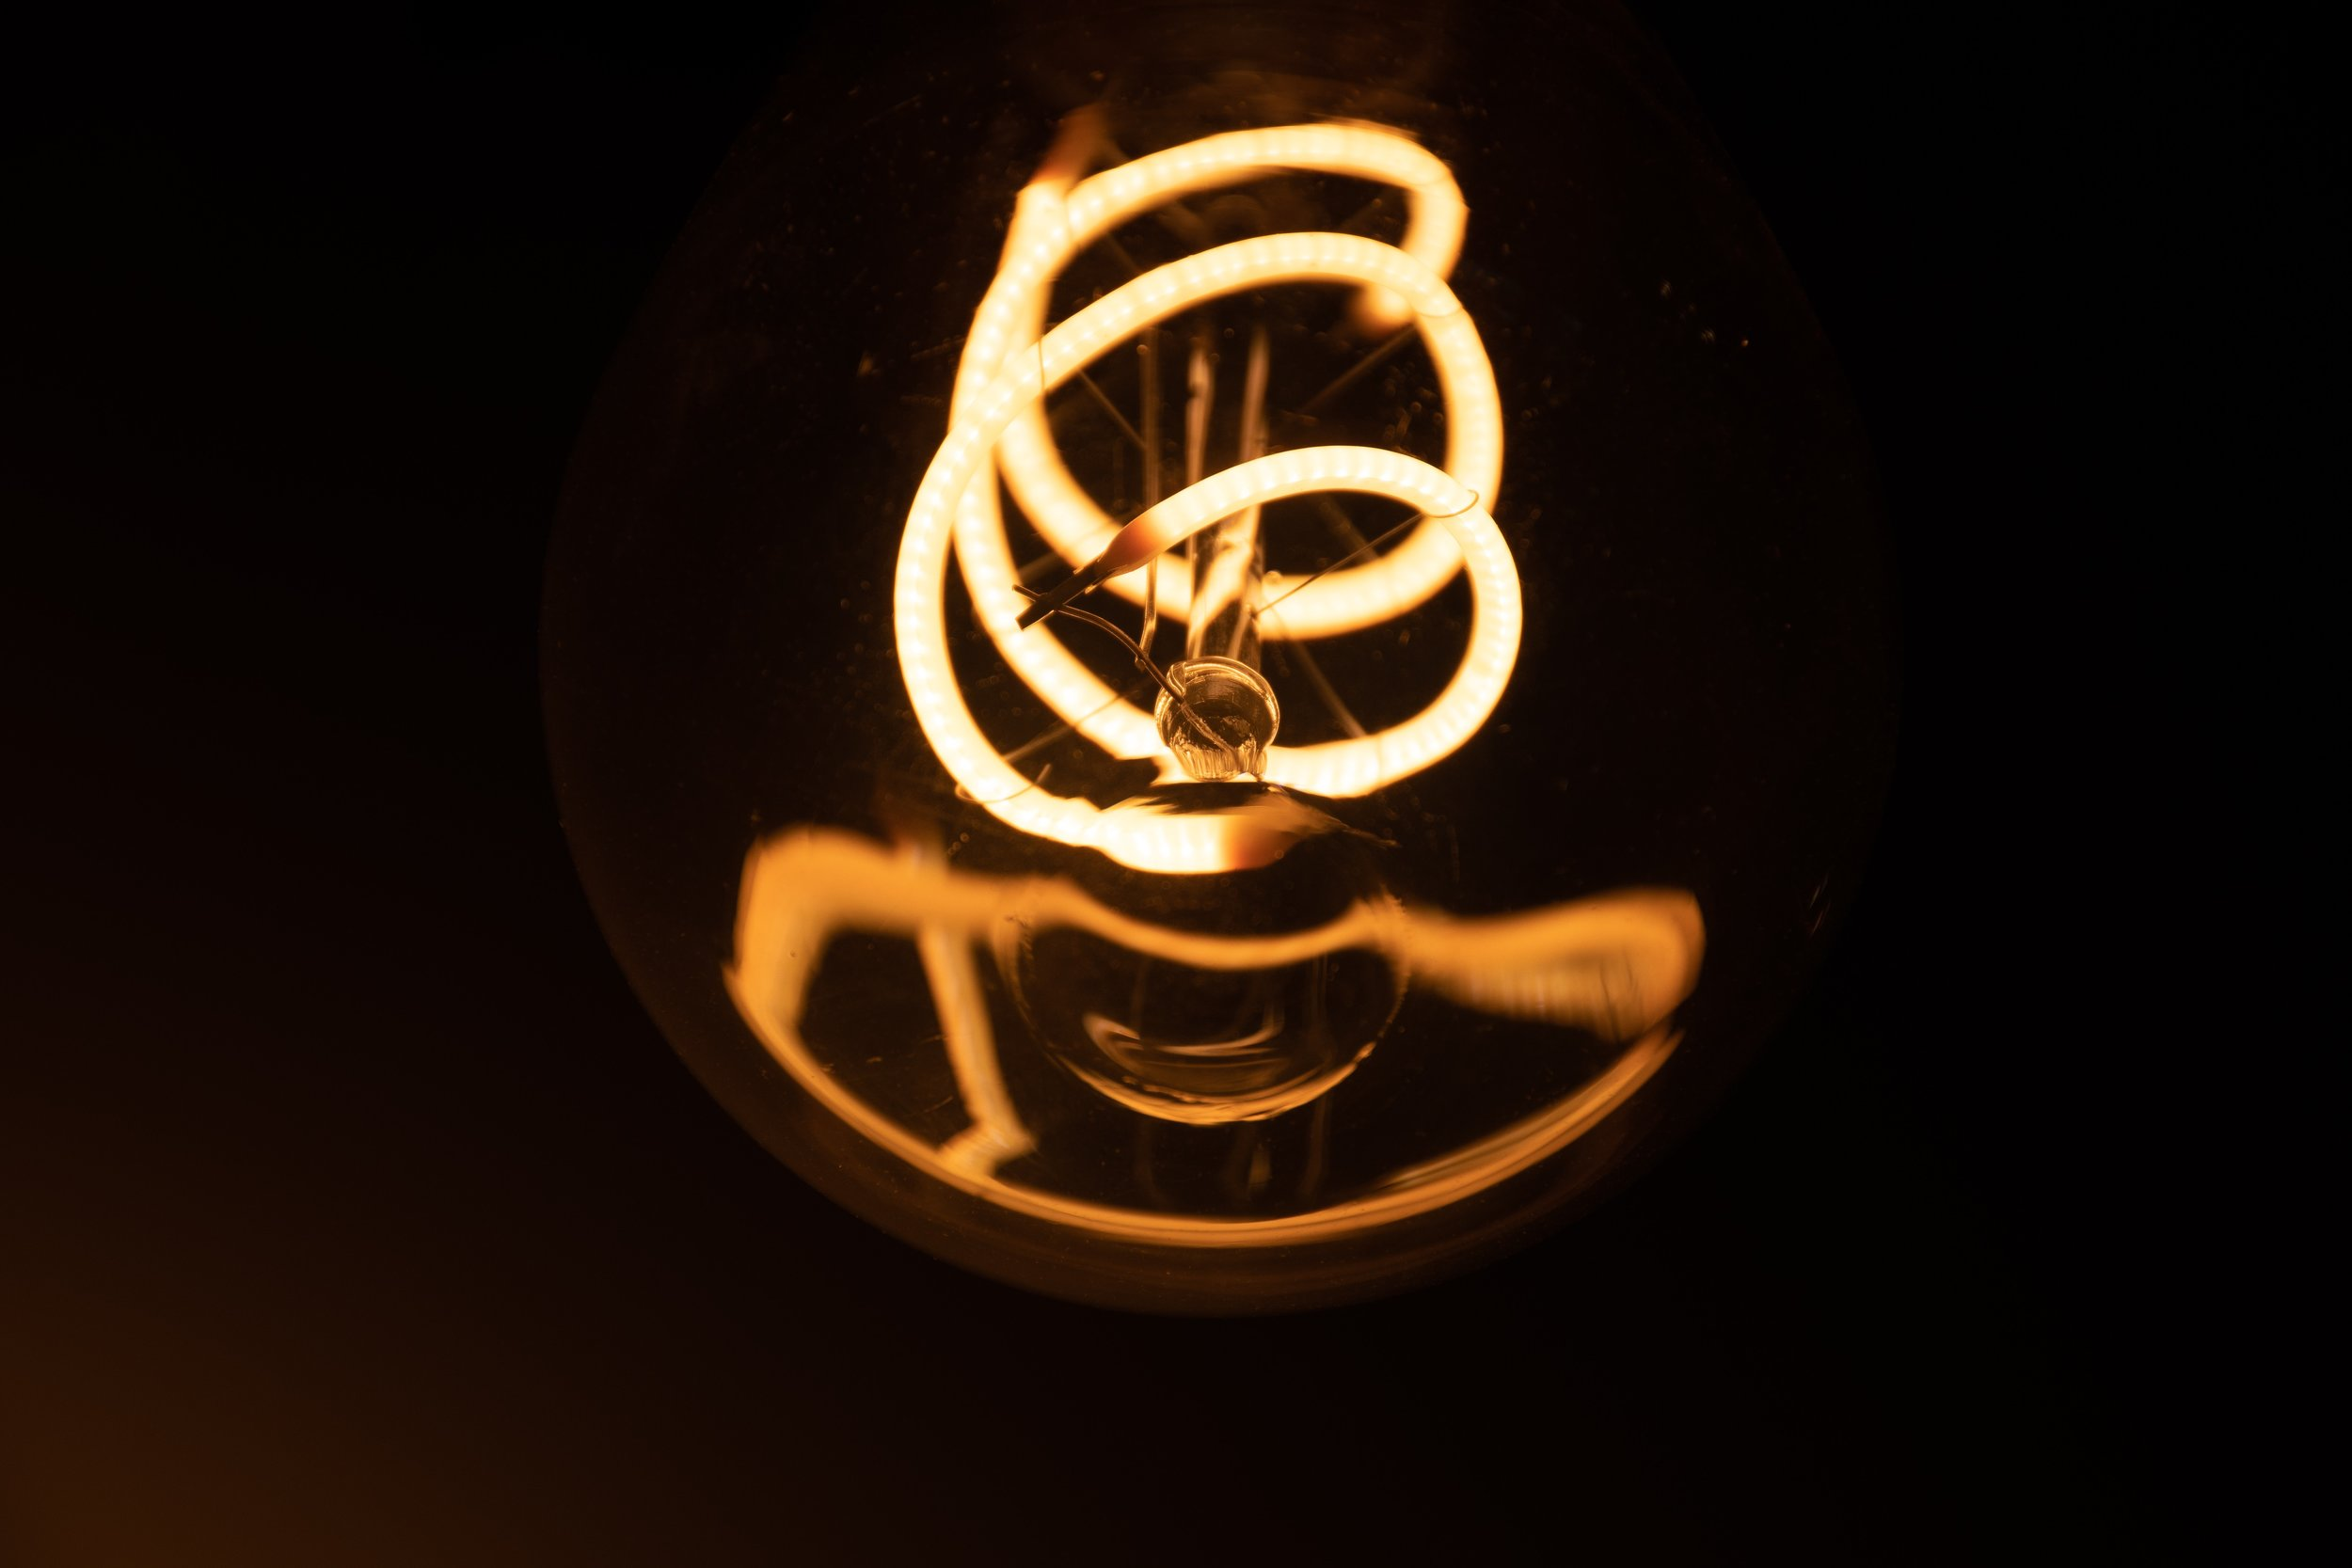 close-up-dark-electricity-1073051.jpg